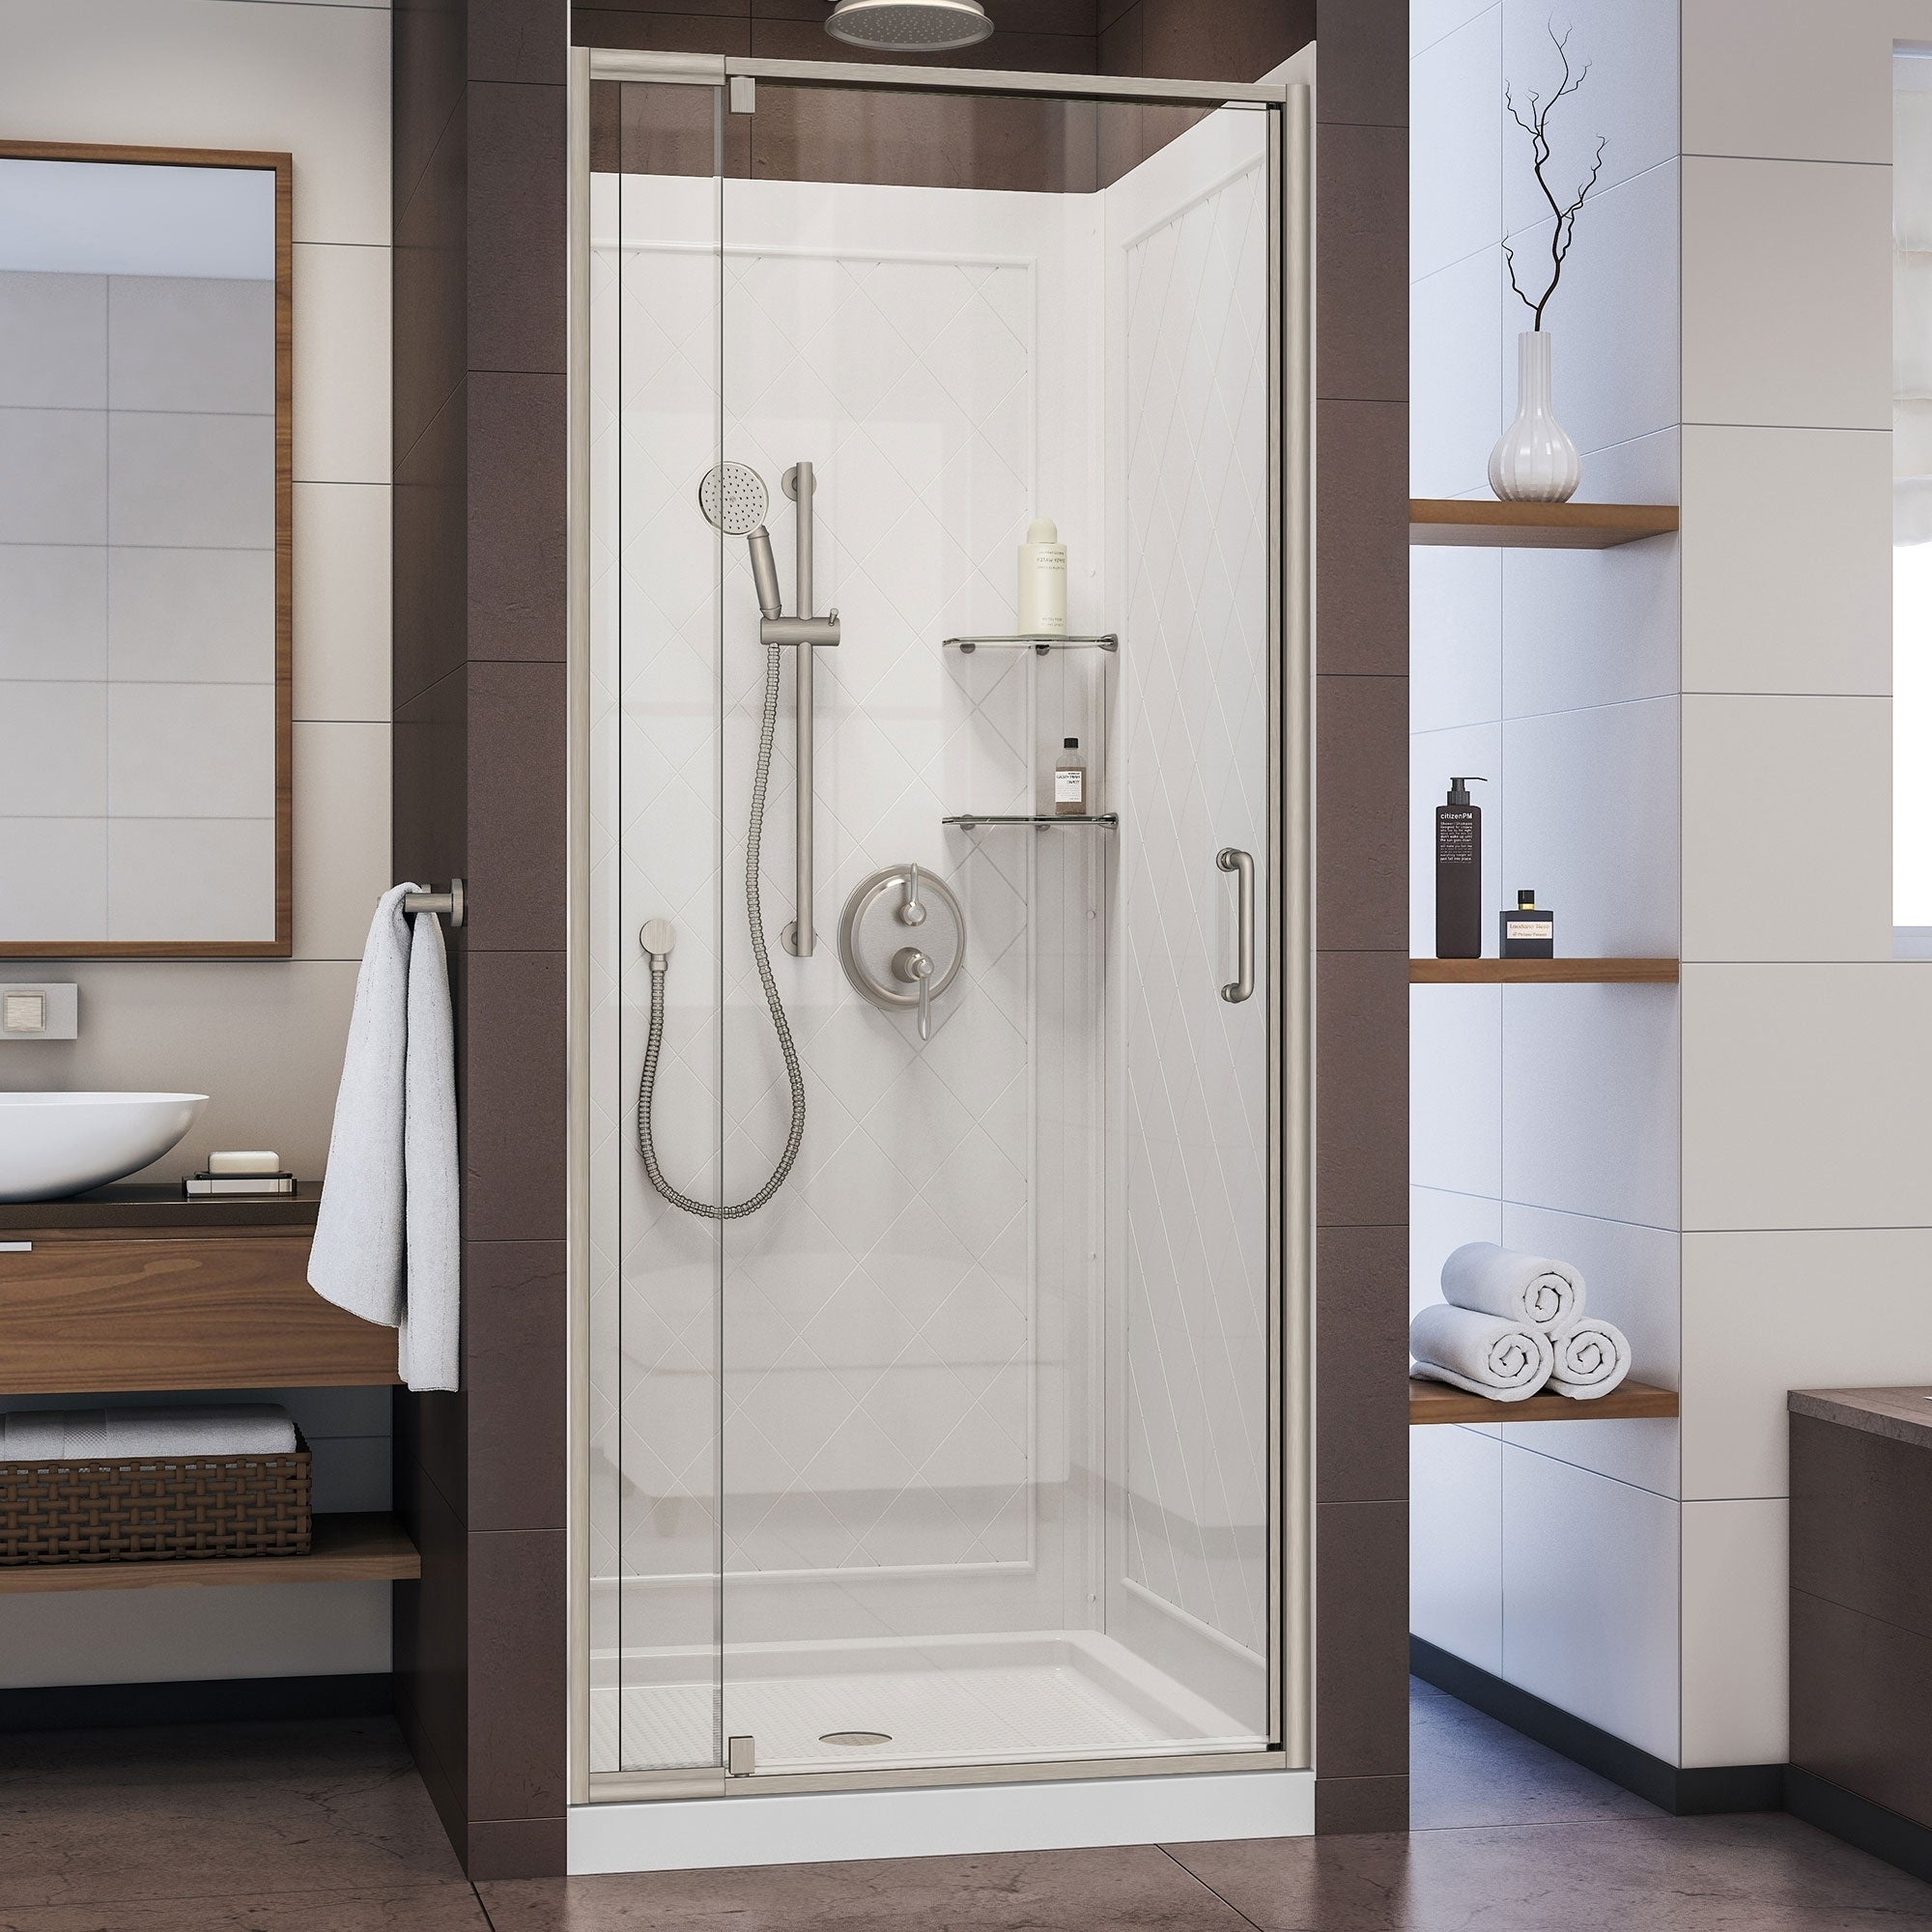 Dreamline Flex 36 In D X 36 In W X 76 3 4 In H Semi Frameless Pivot Shower Door Slimline Shower Base And Backwall Kit